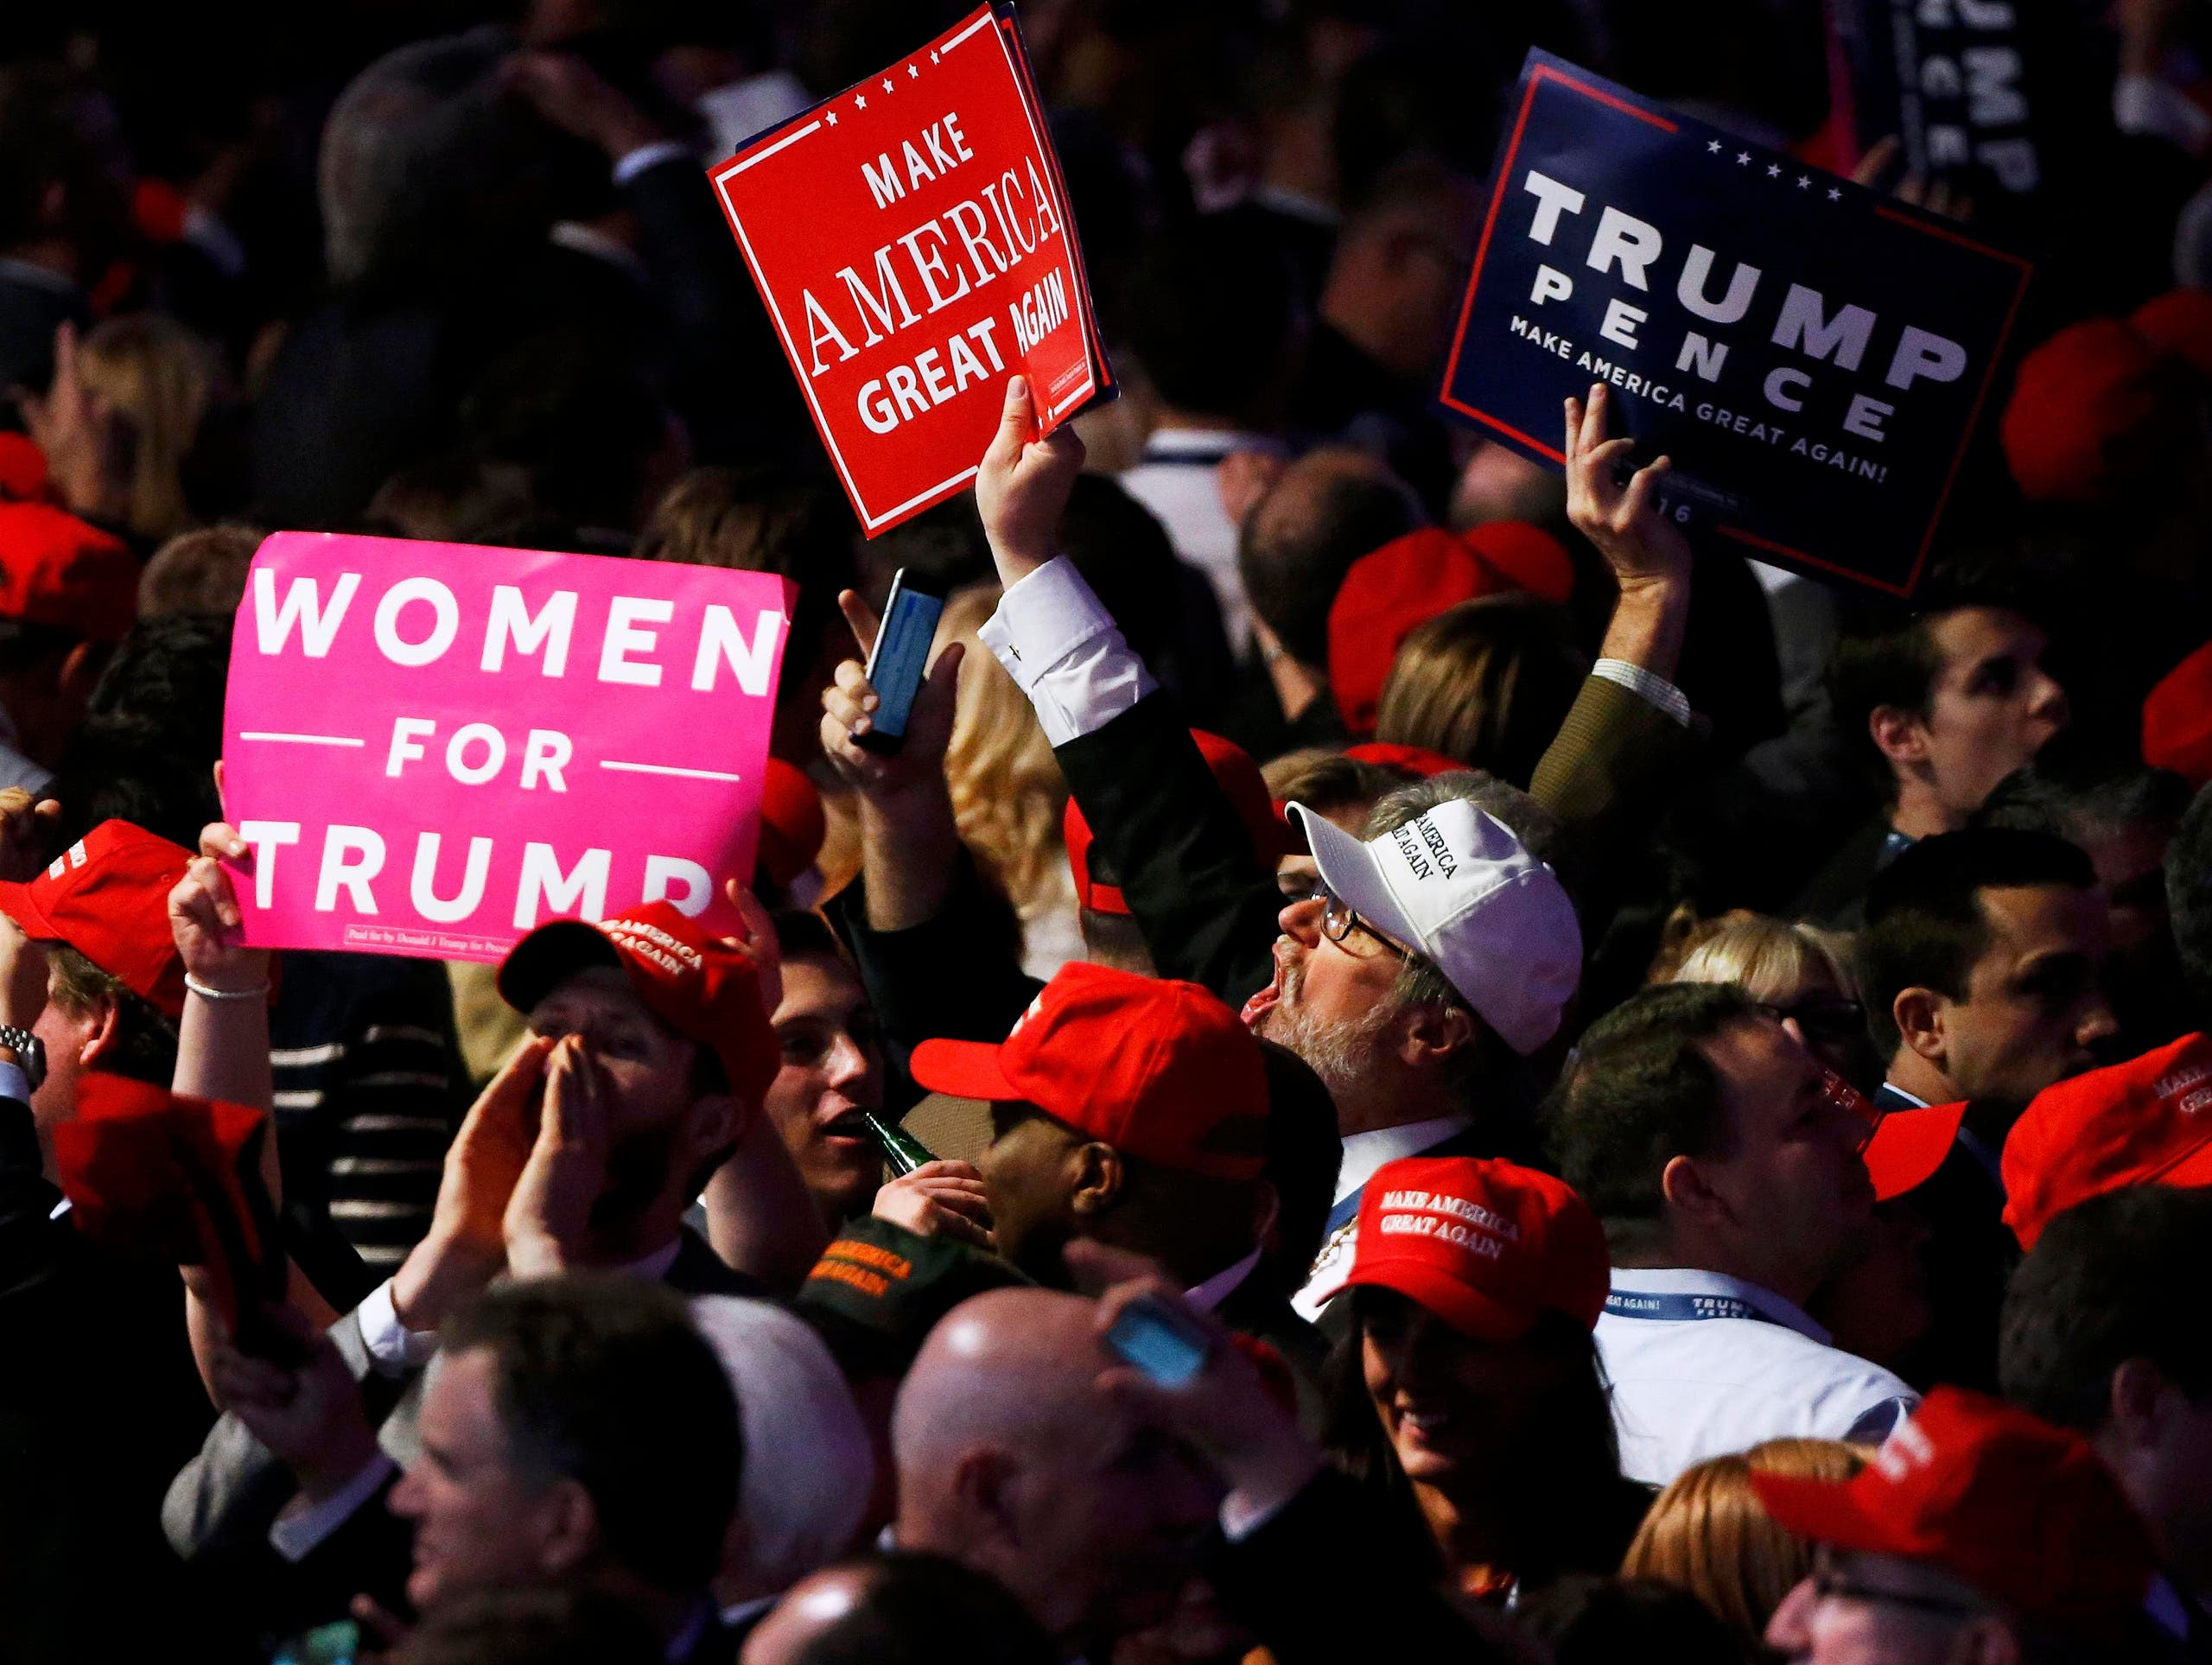 Supporters celebrate as returns come in for Republican U.S. presidential nominee Donald Trump during an election night rally in Manhattan, New York, U.S., November 8, 2016. (Reuters)